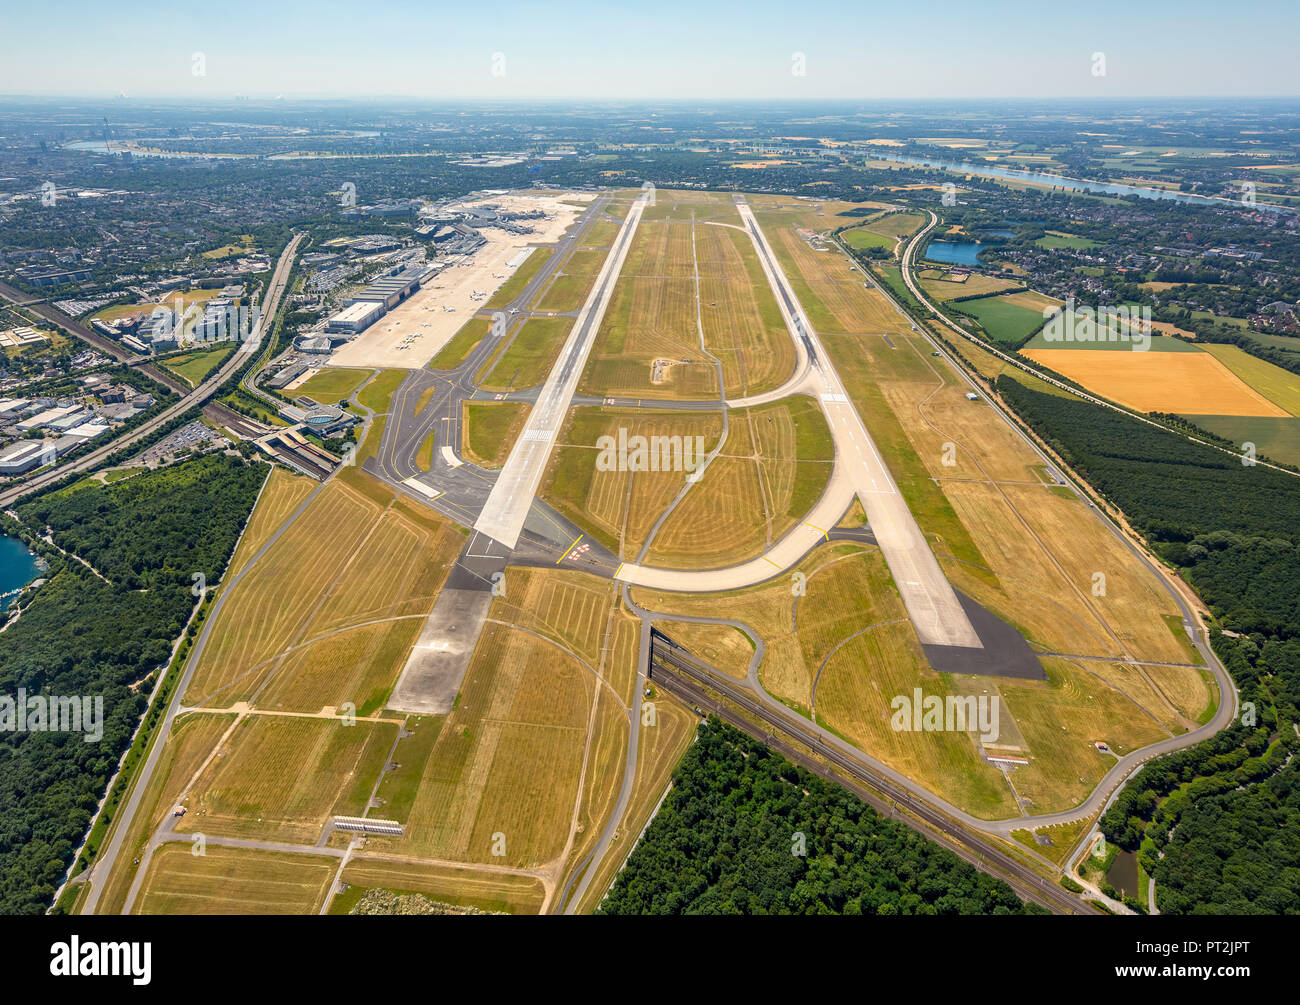 Dusseldorf Airport, Overview, Runway Dusseldorf, Runways 23L and 23R, Dusseldorf, Rhineland, North Rhine-Westphalia, Germany - Stock Image